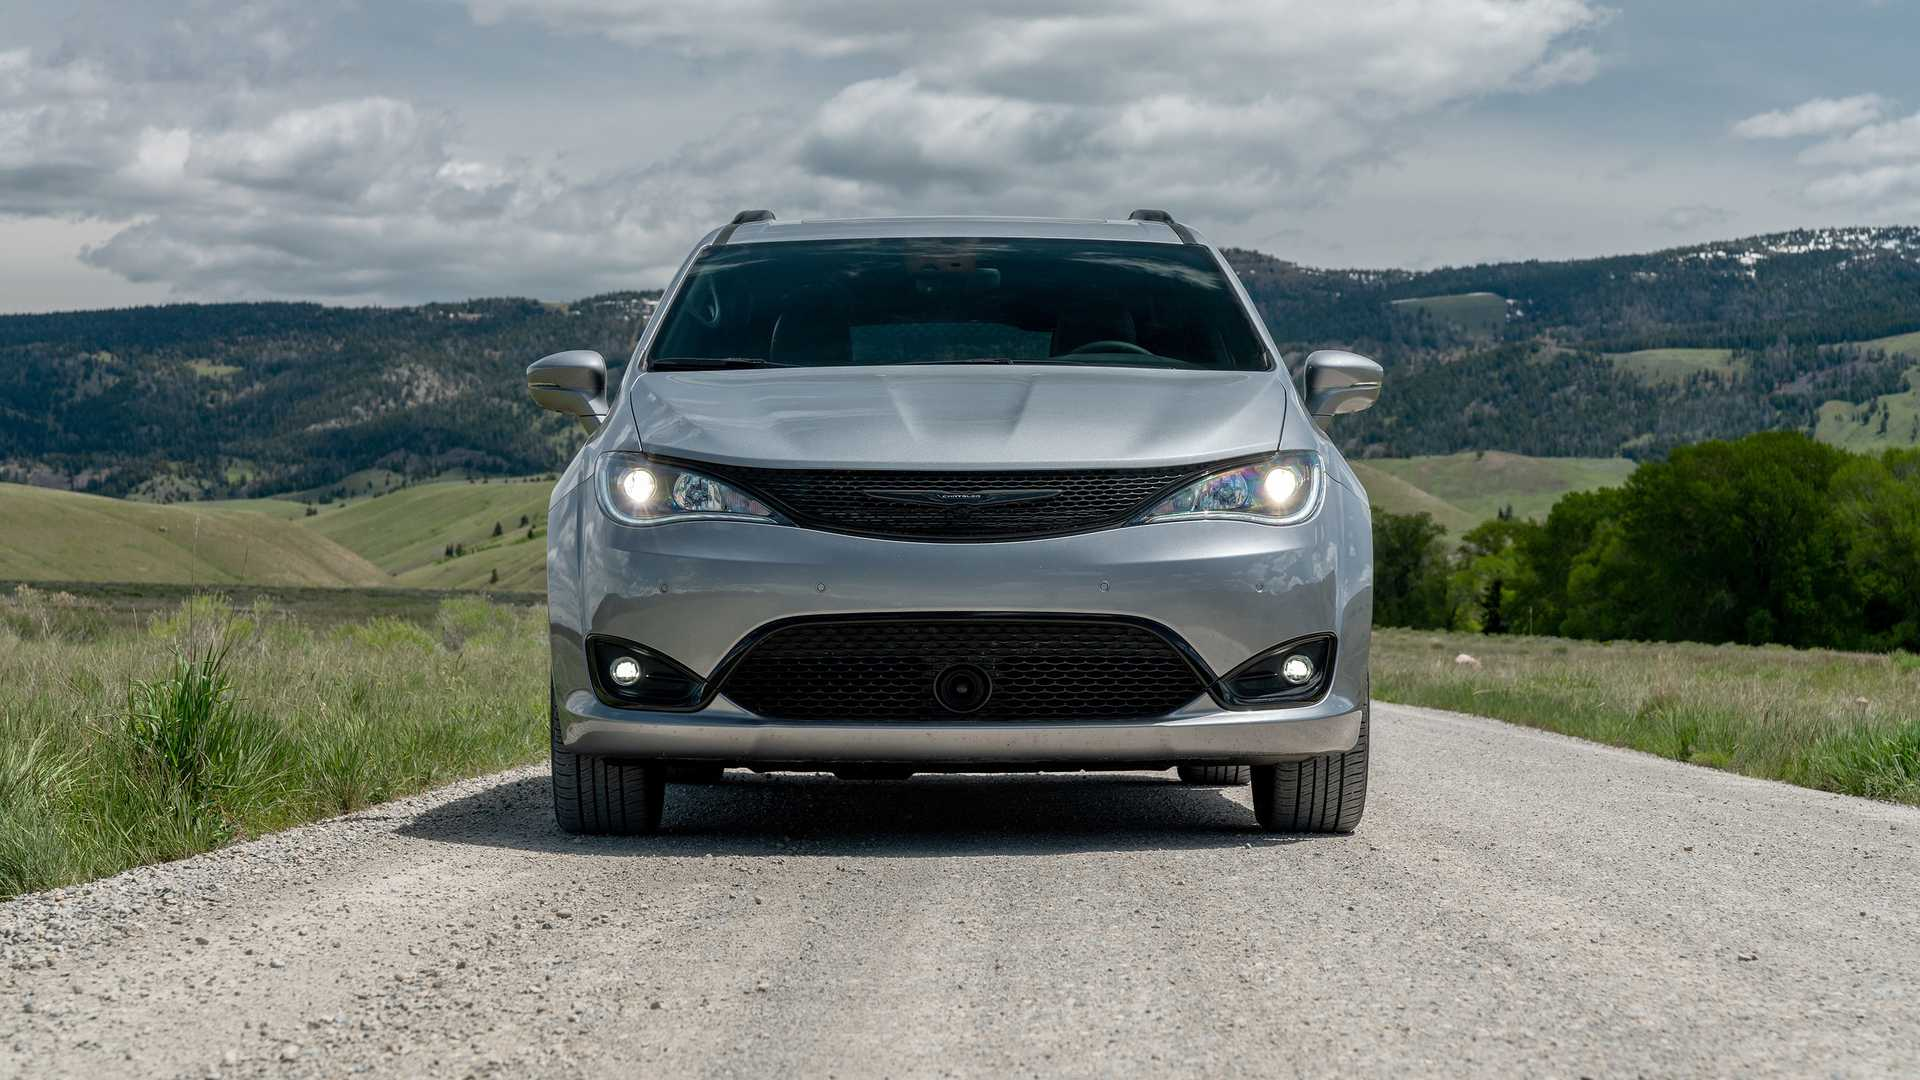 2020_Chrysler_Pacifica_Red_S_Edition_0007